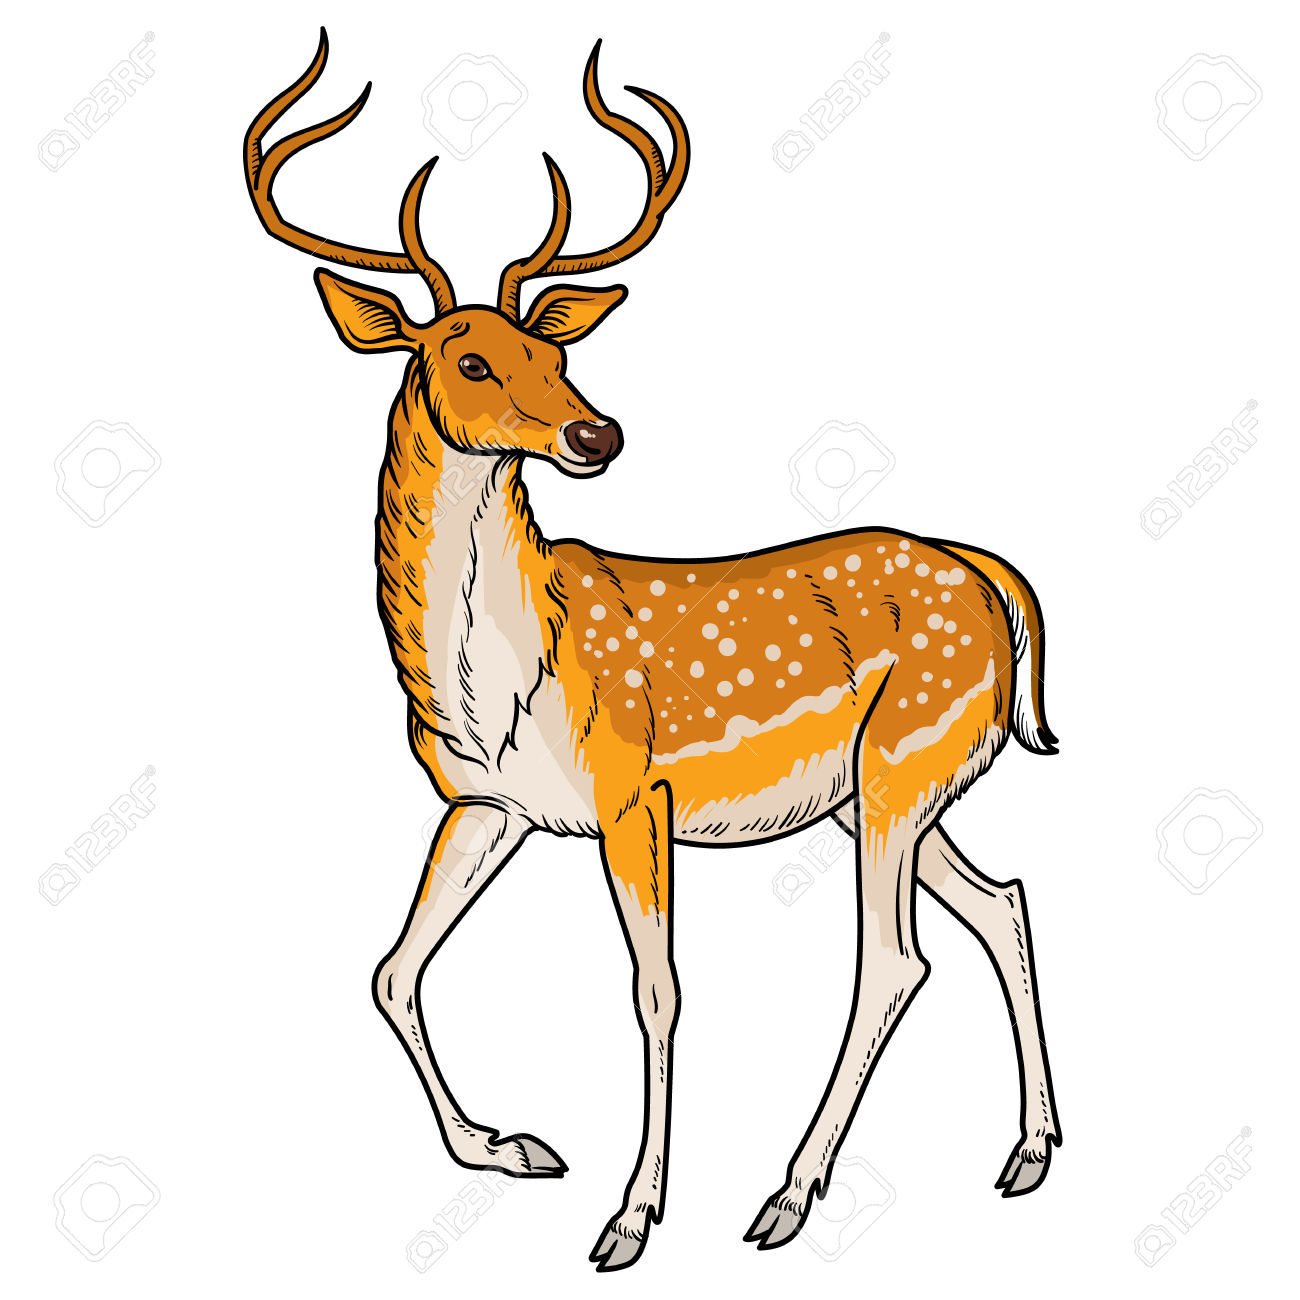 whitetail buck clipart at getdrawings com free for personal use rh getdrawings com deer clip art portrait deer clip art pictures